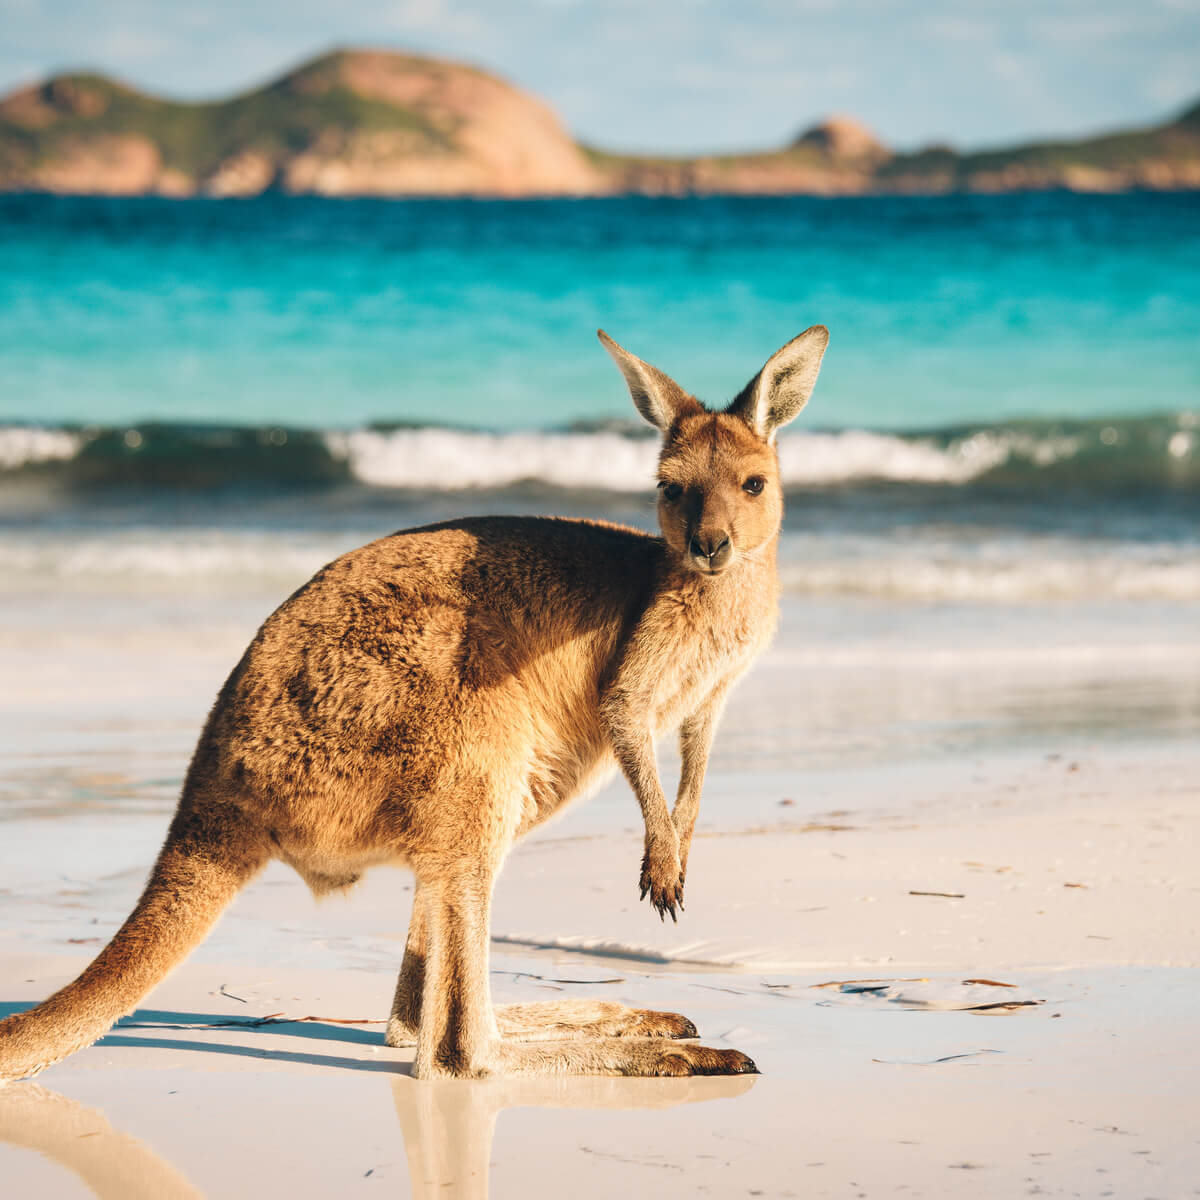 Australia - Medical Specialists in demand include psychiatrists, general practitioners, emergency physicians